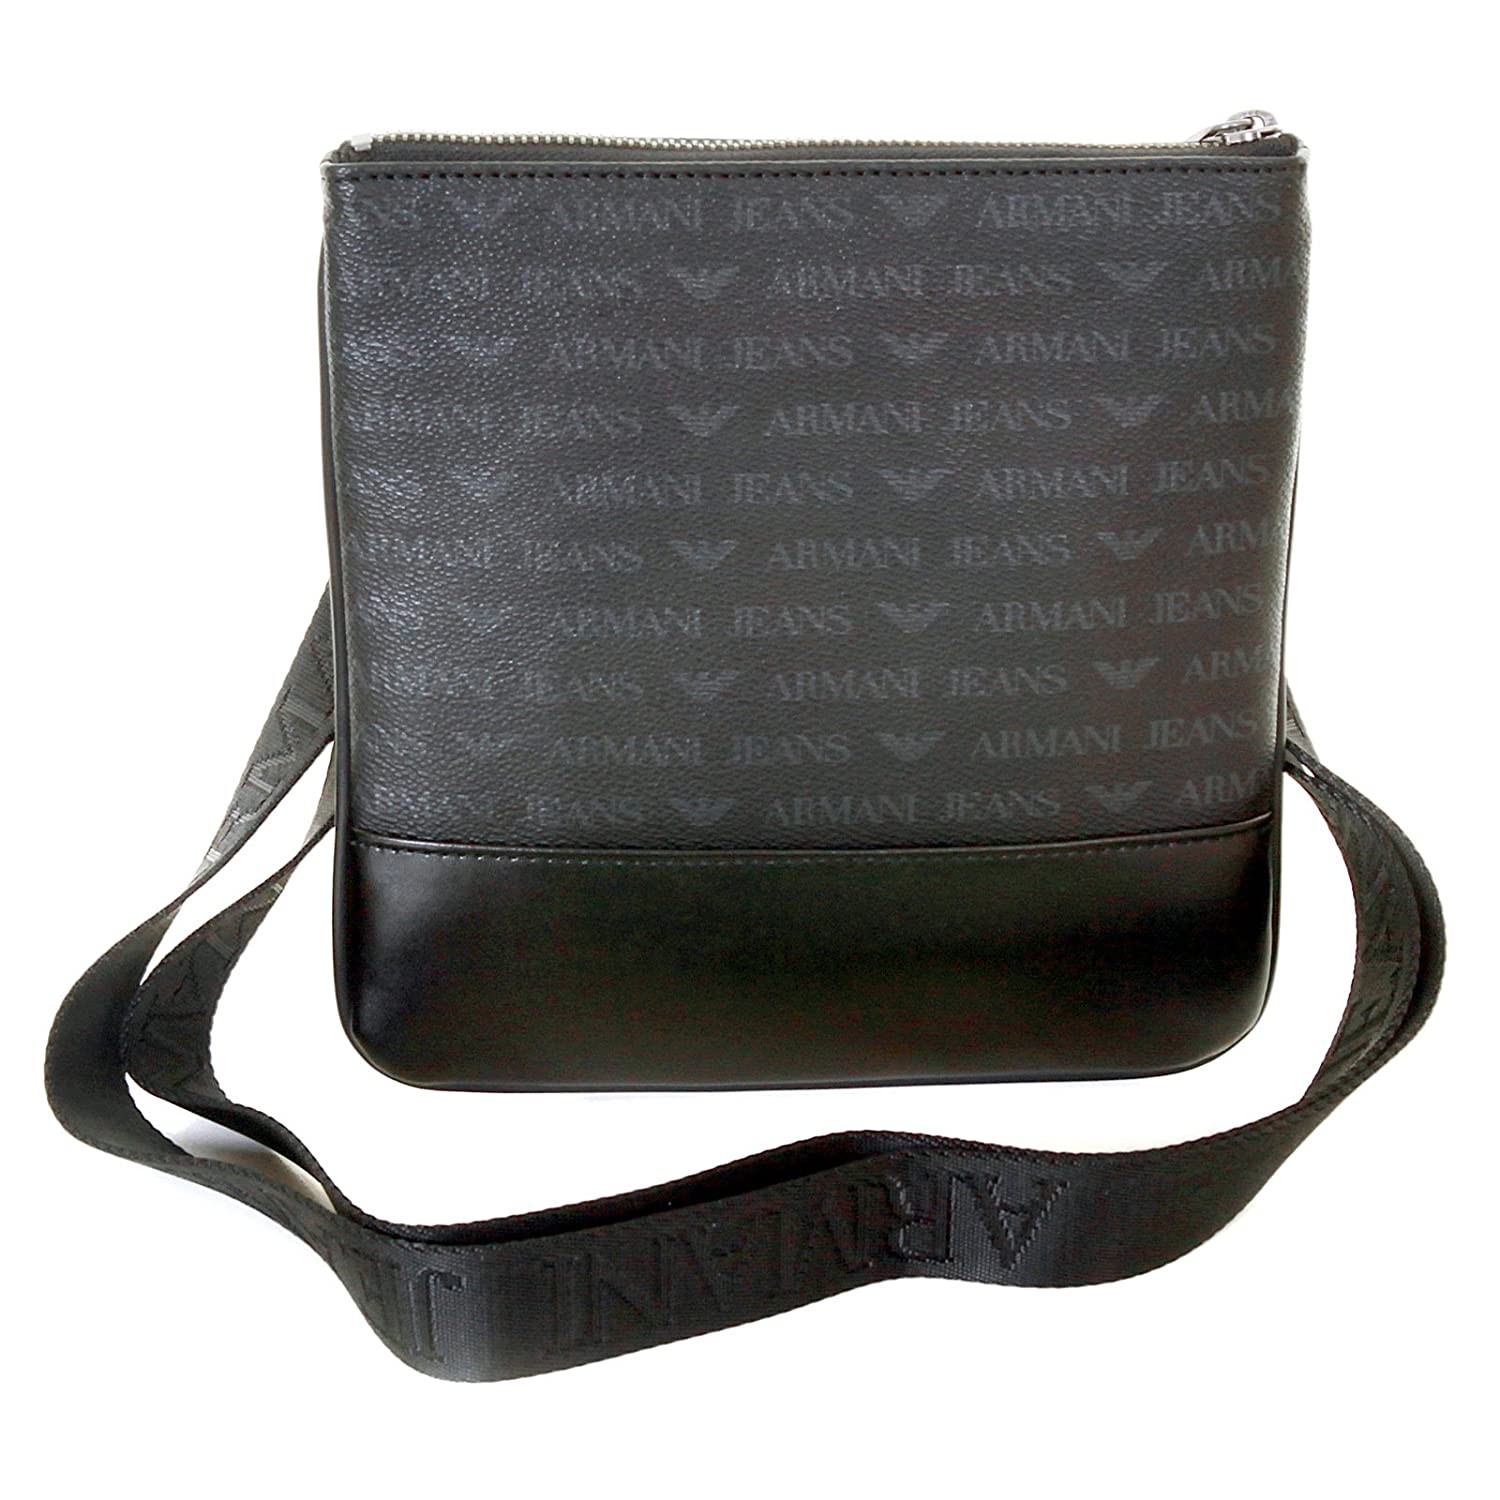 Armani Jeans mens black 06205 J4 logo small messenger bag AJM2473   Amazon.ca  Luggage   Bags 4420e05196a23